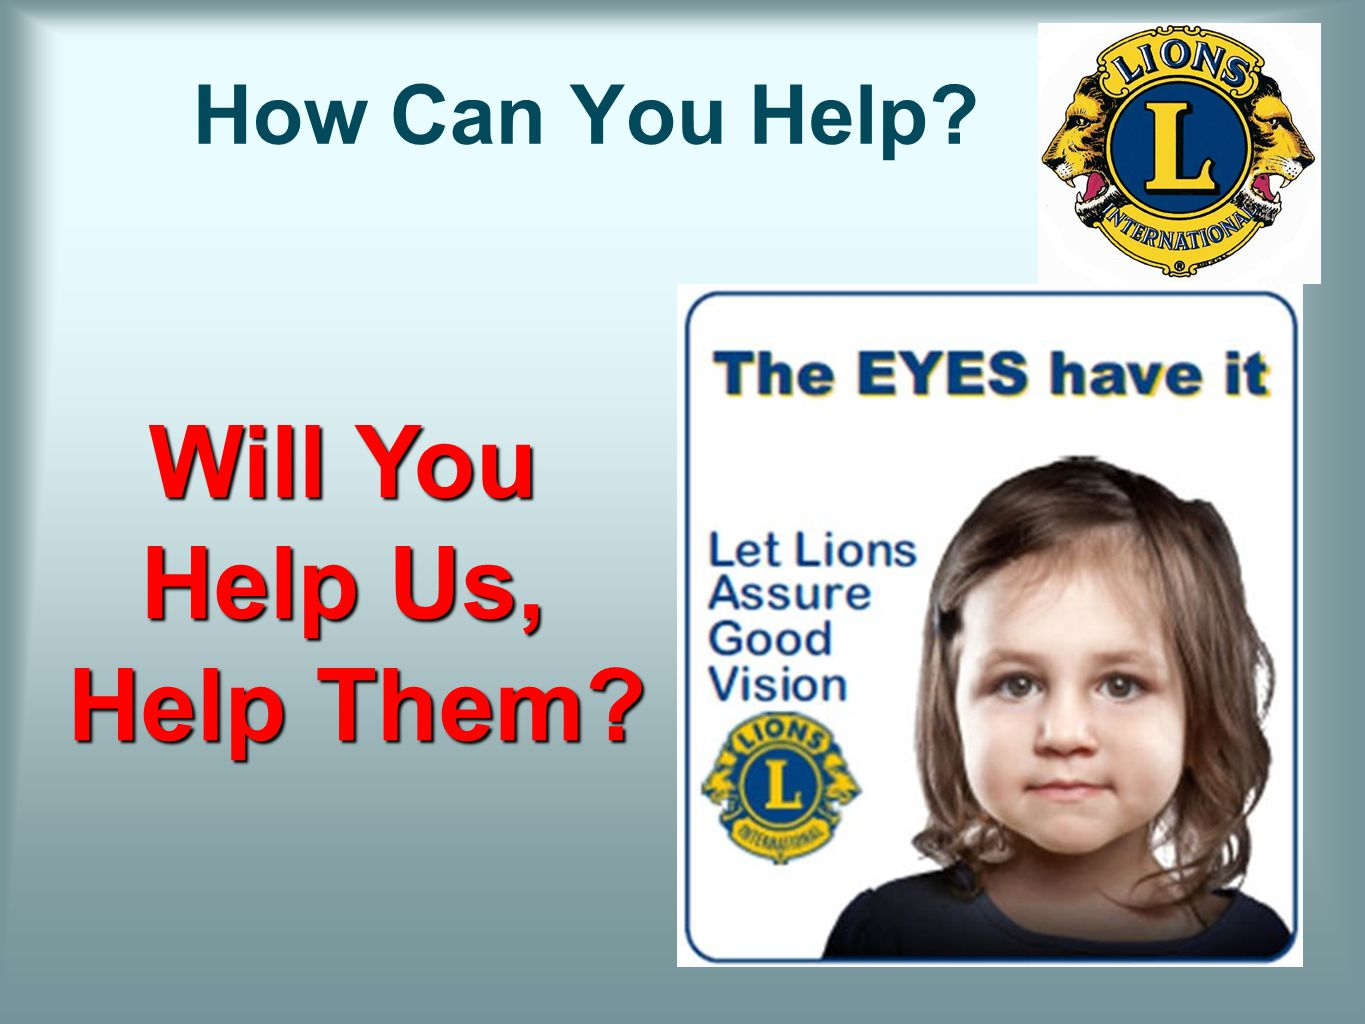 How Can You Help? Will You Help Us, Help Them? Help Them?